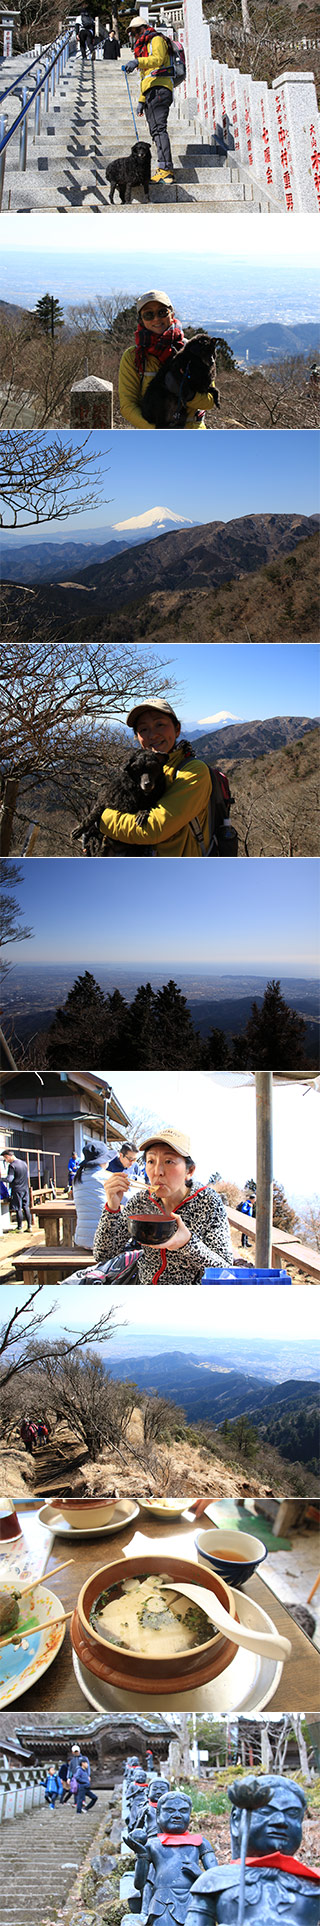 Hiking at Mt. Oyama